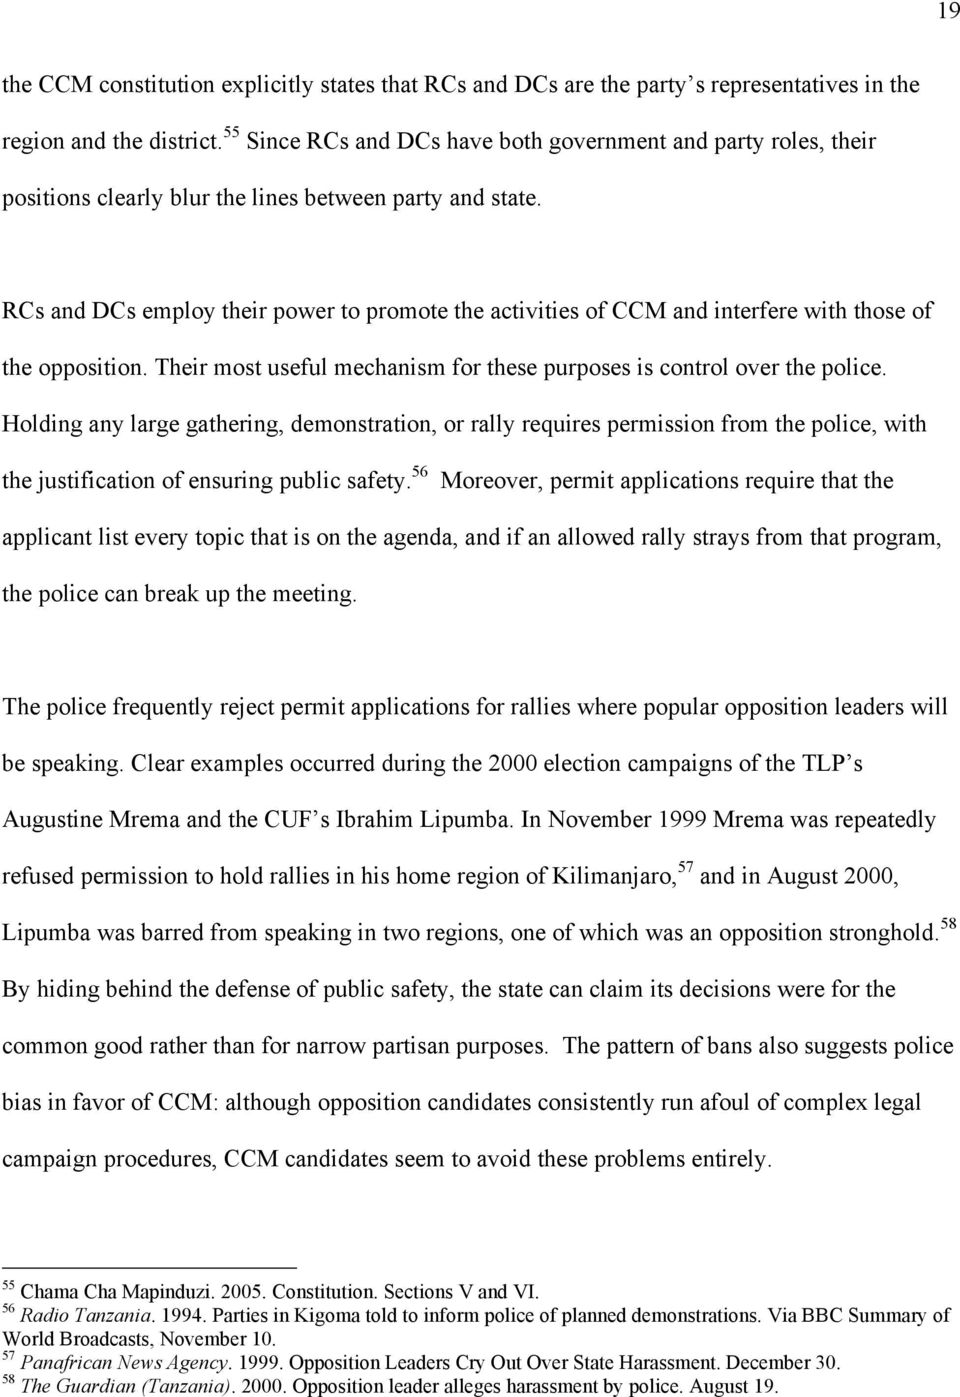 RCs and DCs employ their power to promote the activities of CCM and interfere with those of the opposition. Their most useful mechanism for these purposes is control over the police.